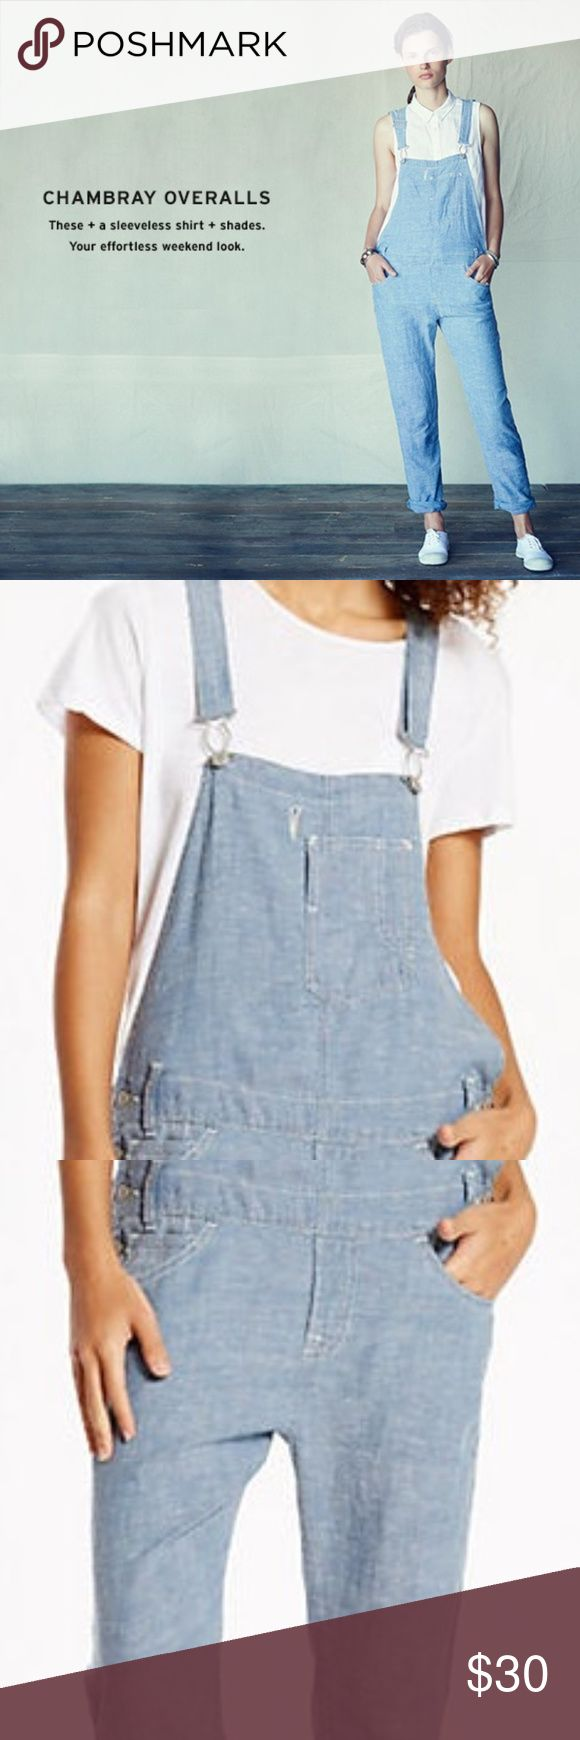 Levi's Lightweight Chambray Overalls Levi's Lightweight Chambray Overalls Only worn once! Levi's Pants